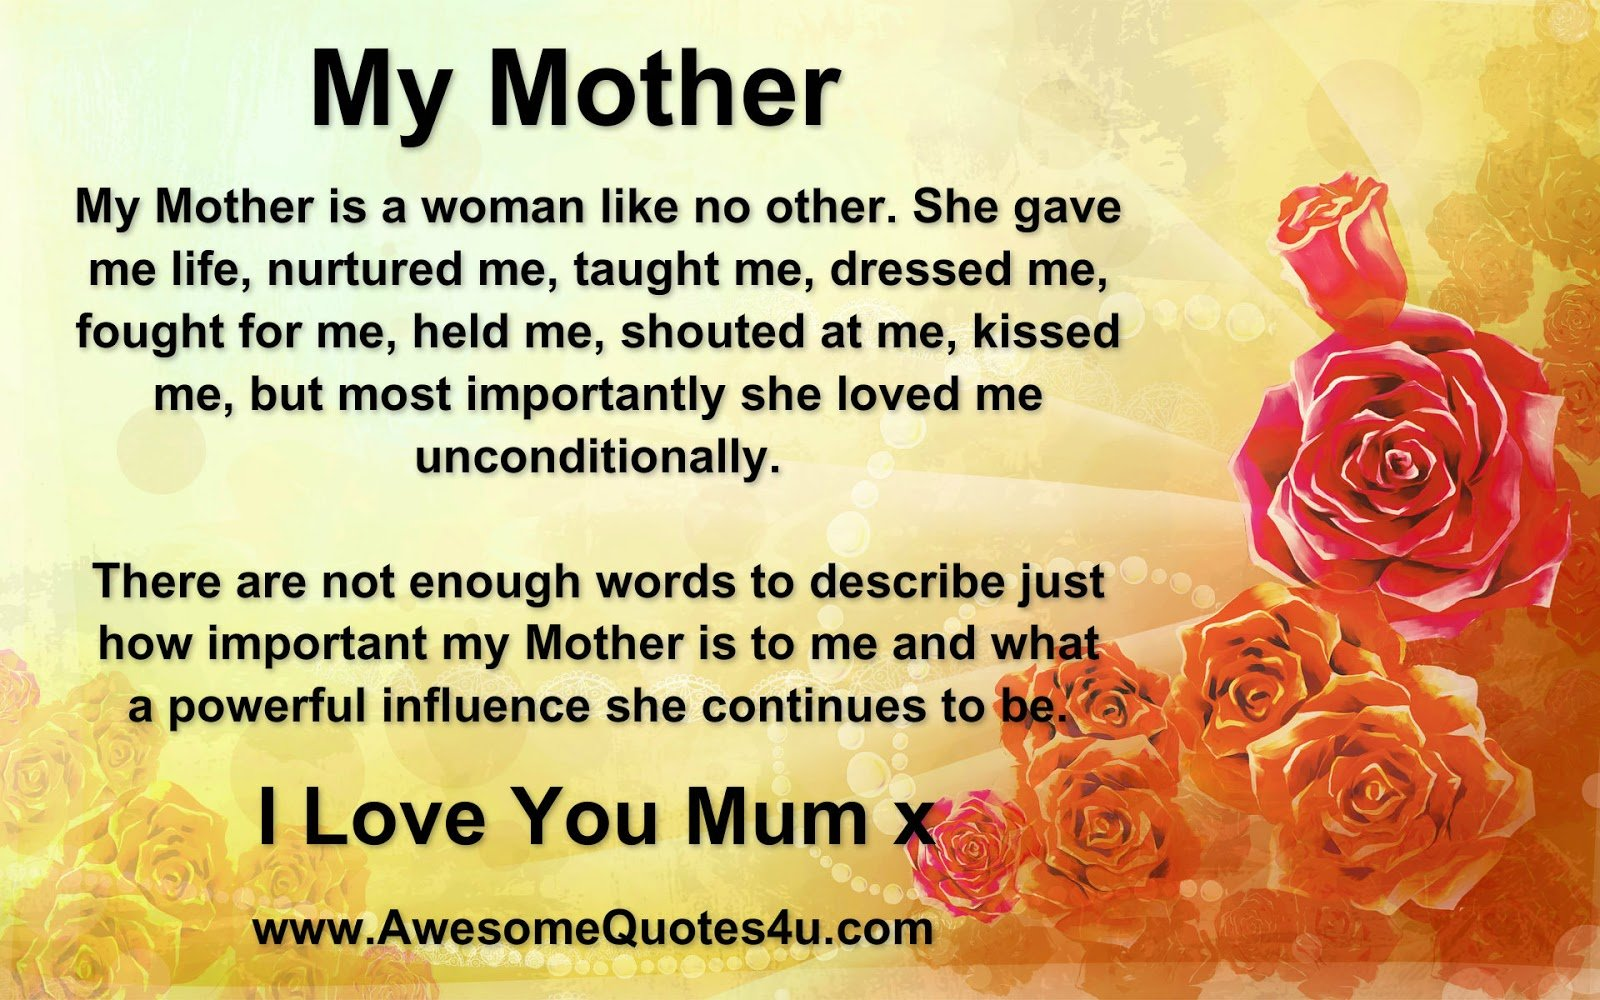 Love Images With Quotes And Pictures : Mother Daughter Love Quotes. QuotesGram